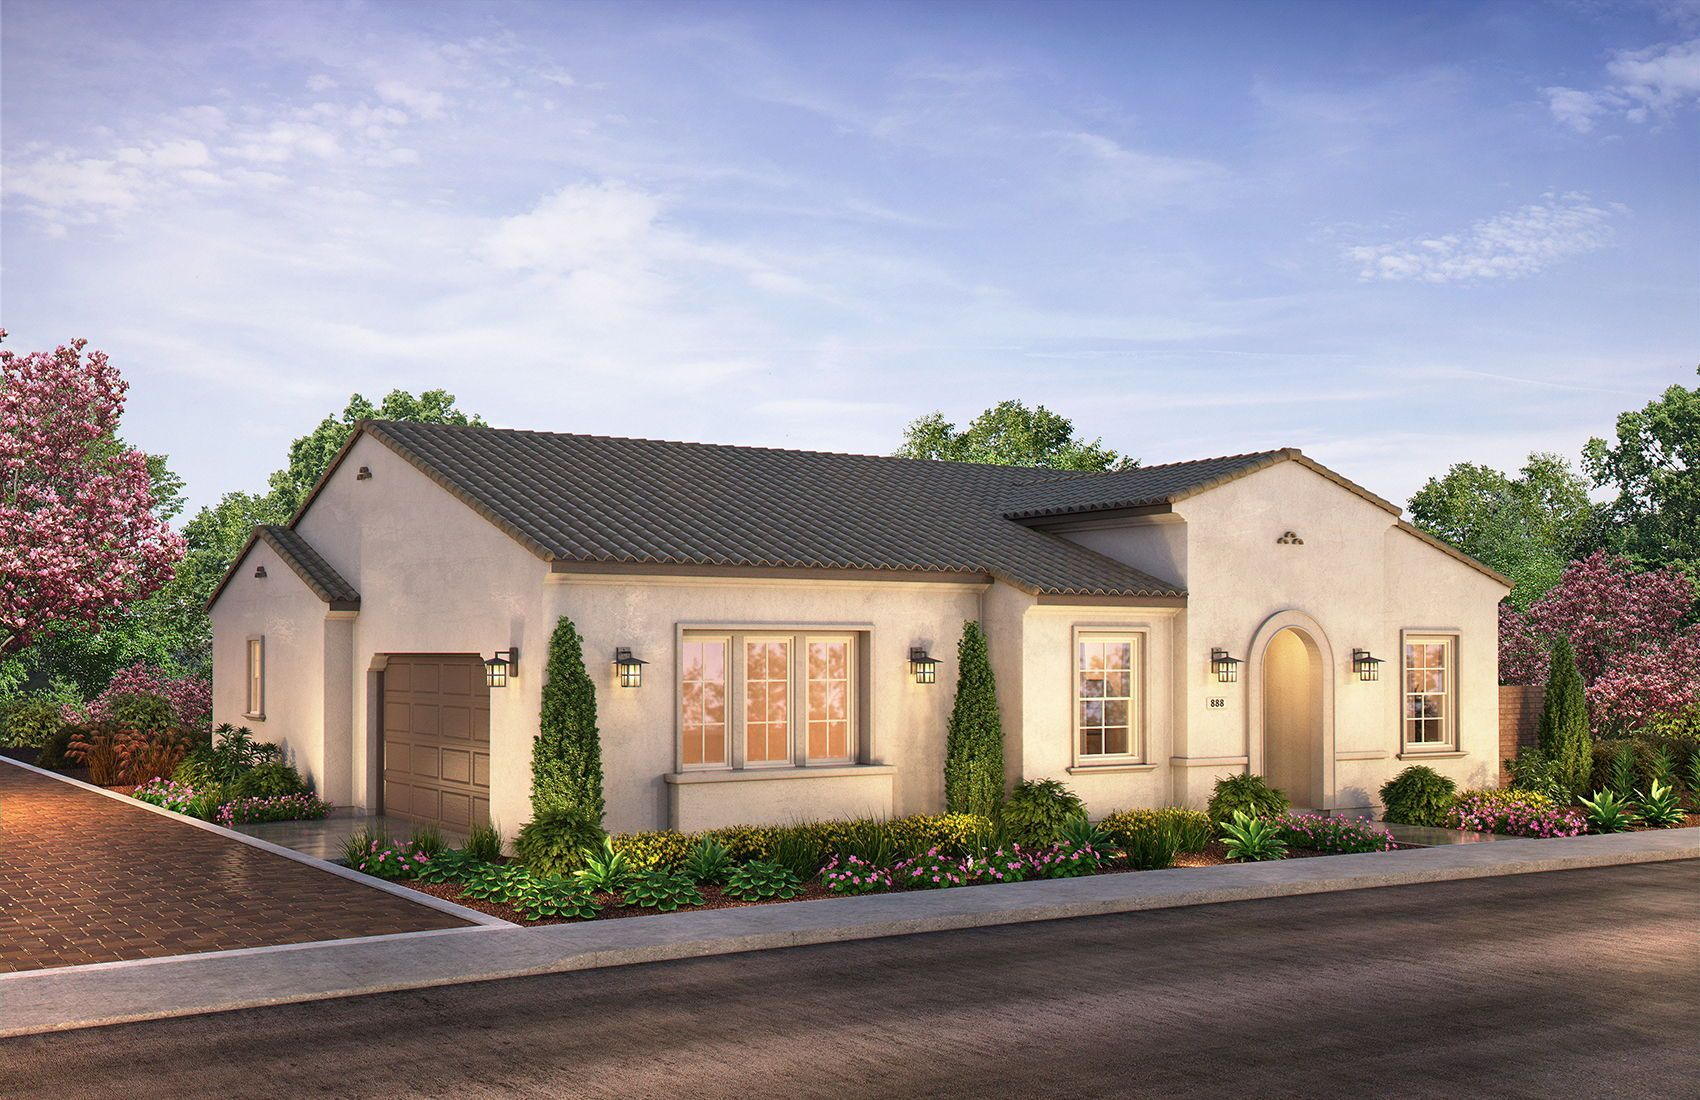 New Homes At Citron At The Grove In 2020 Shea Homes New Homes New Home Builders